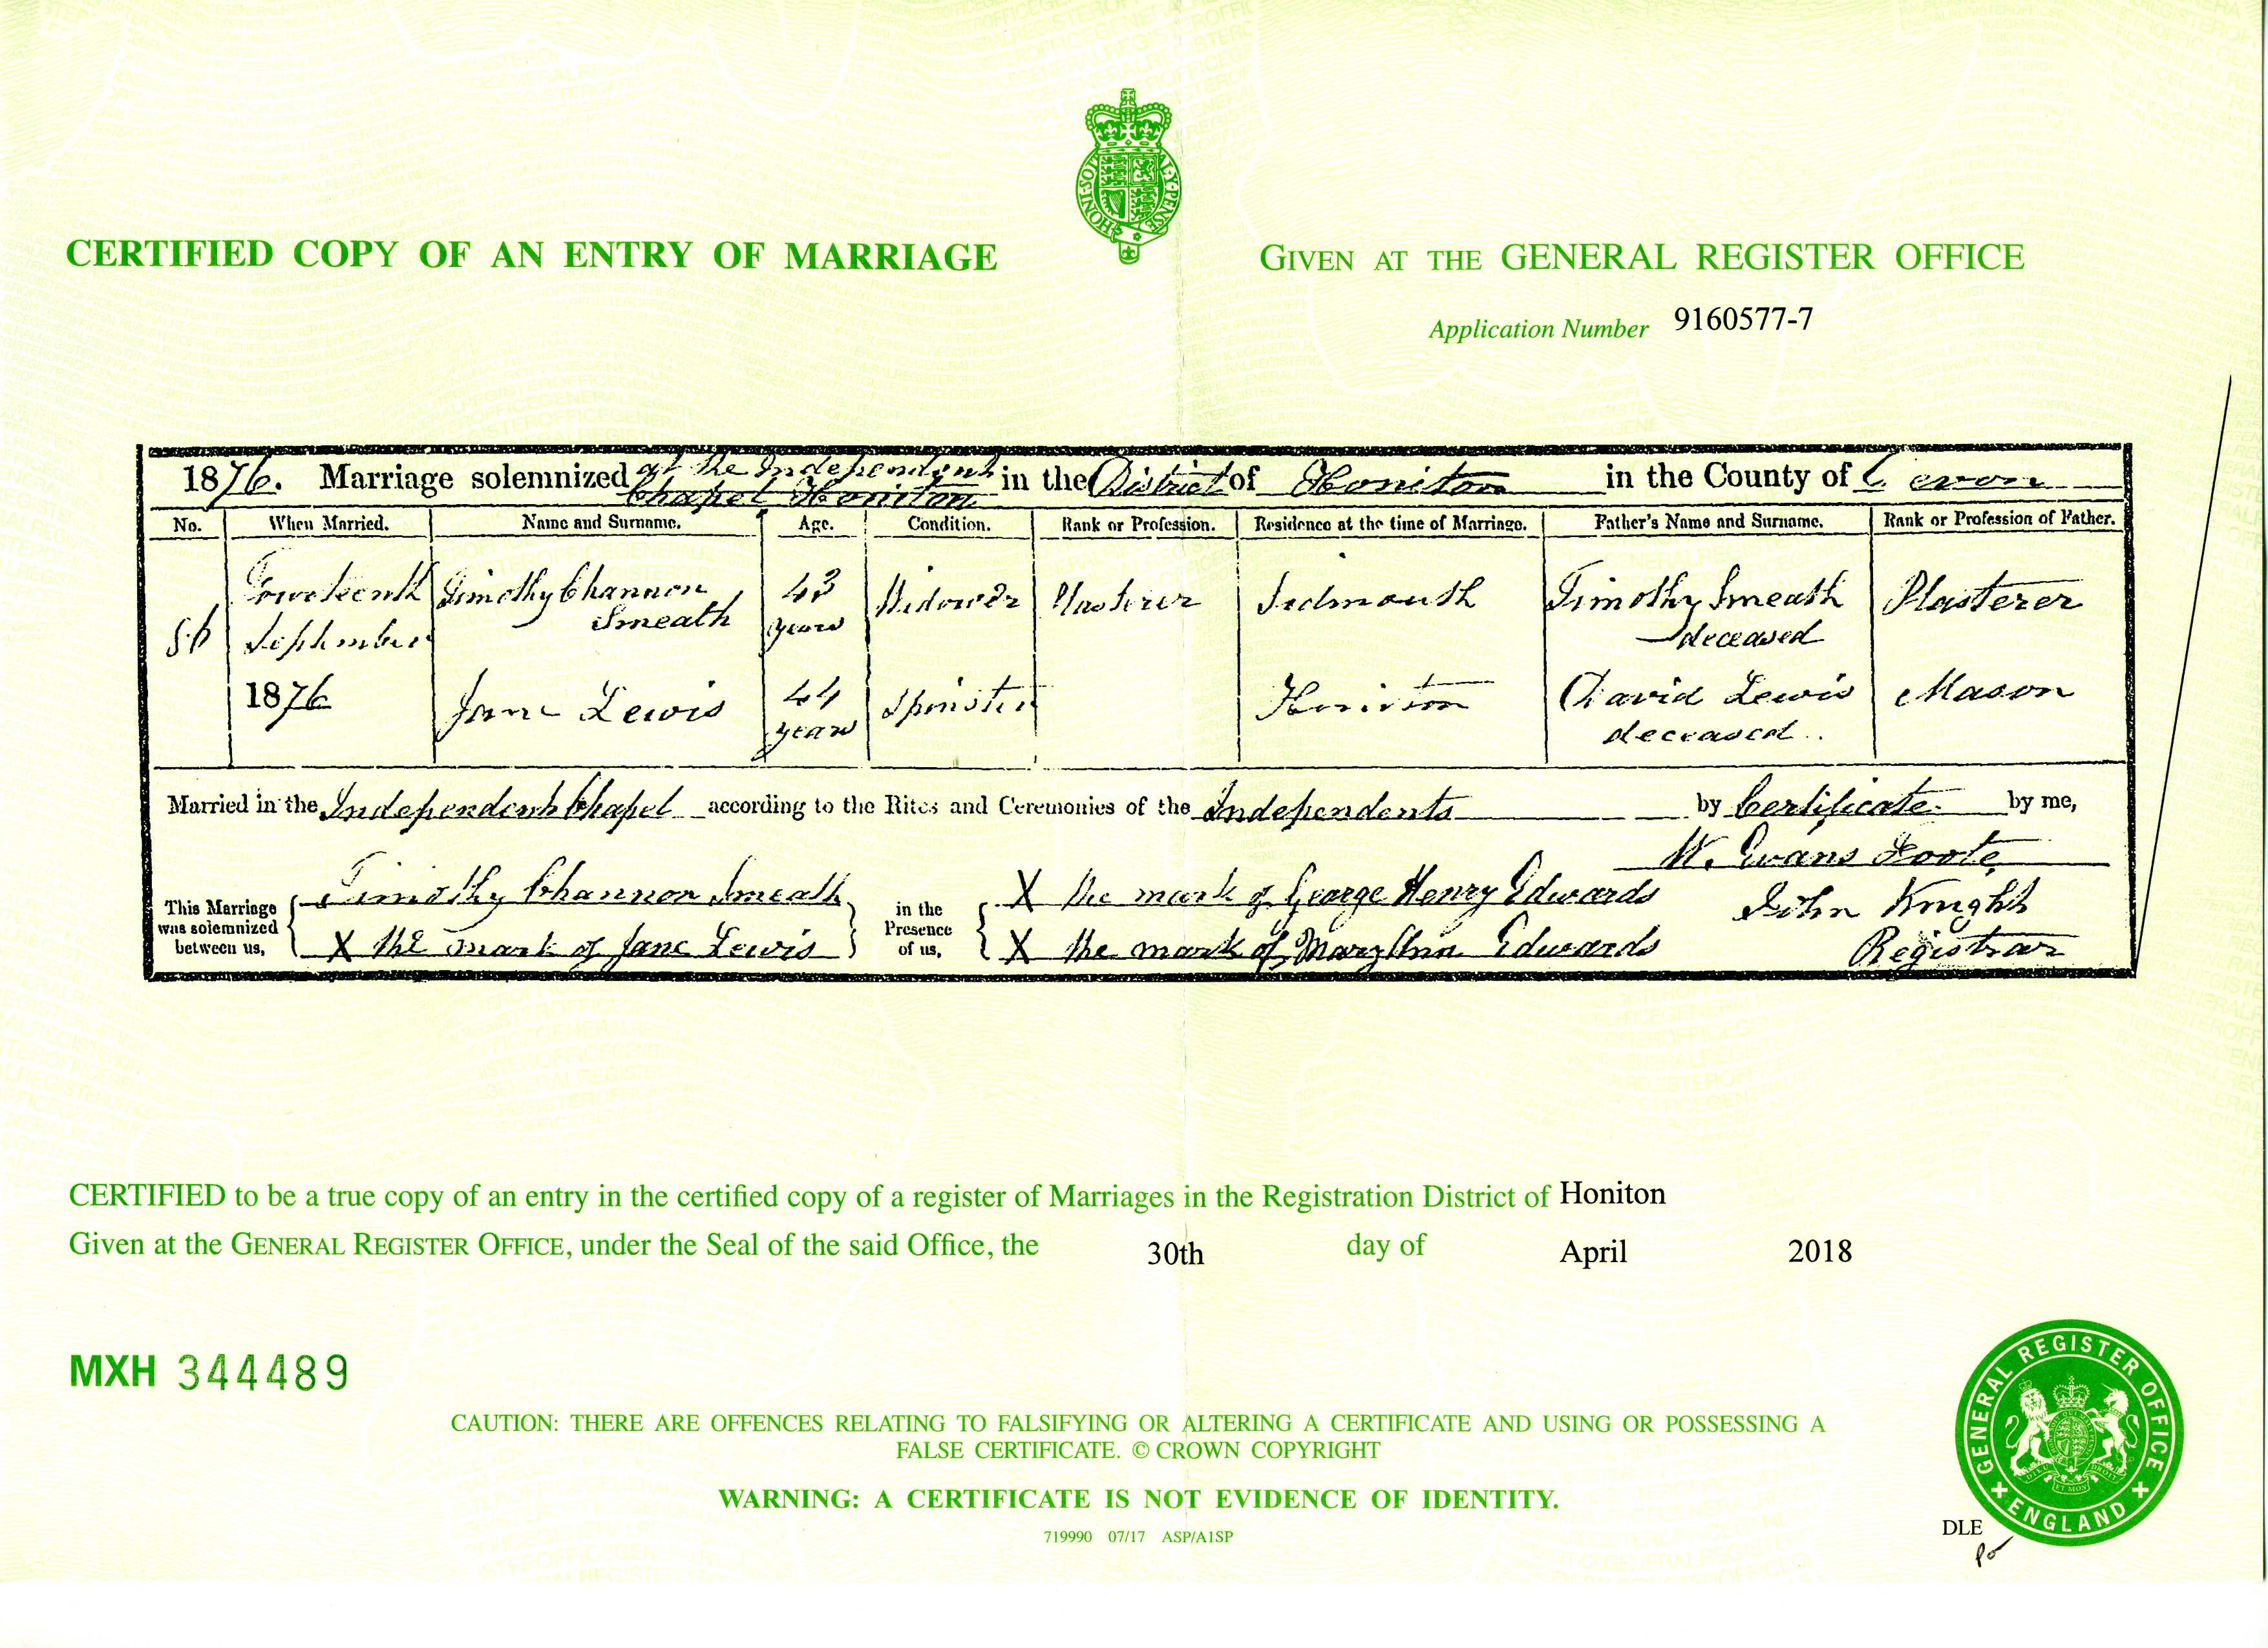 Marriage Certificate For Timothy Smeath And Jane Lewis